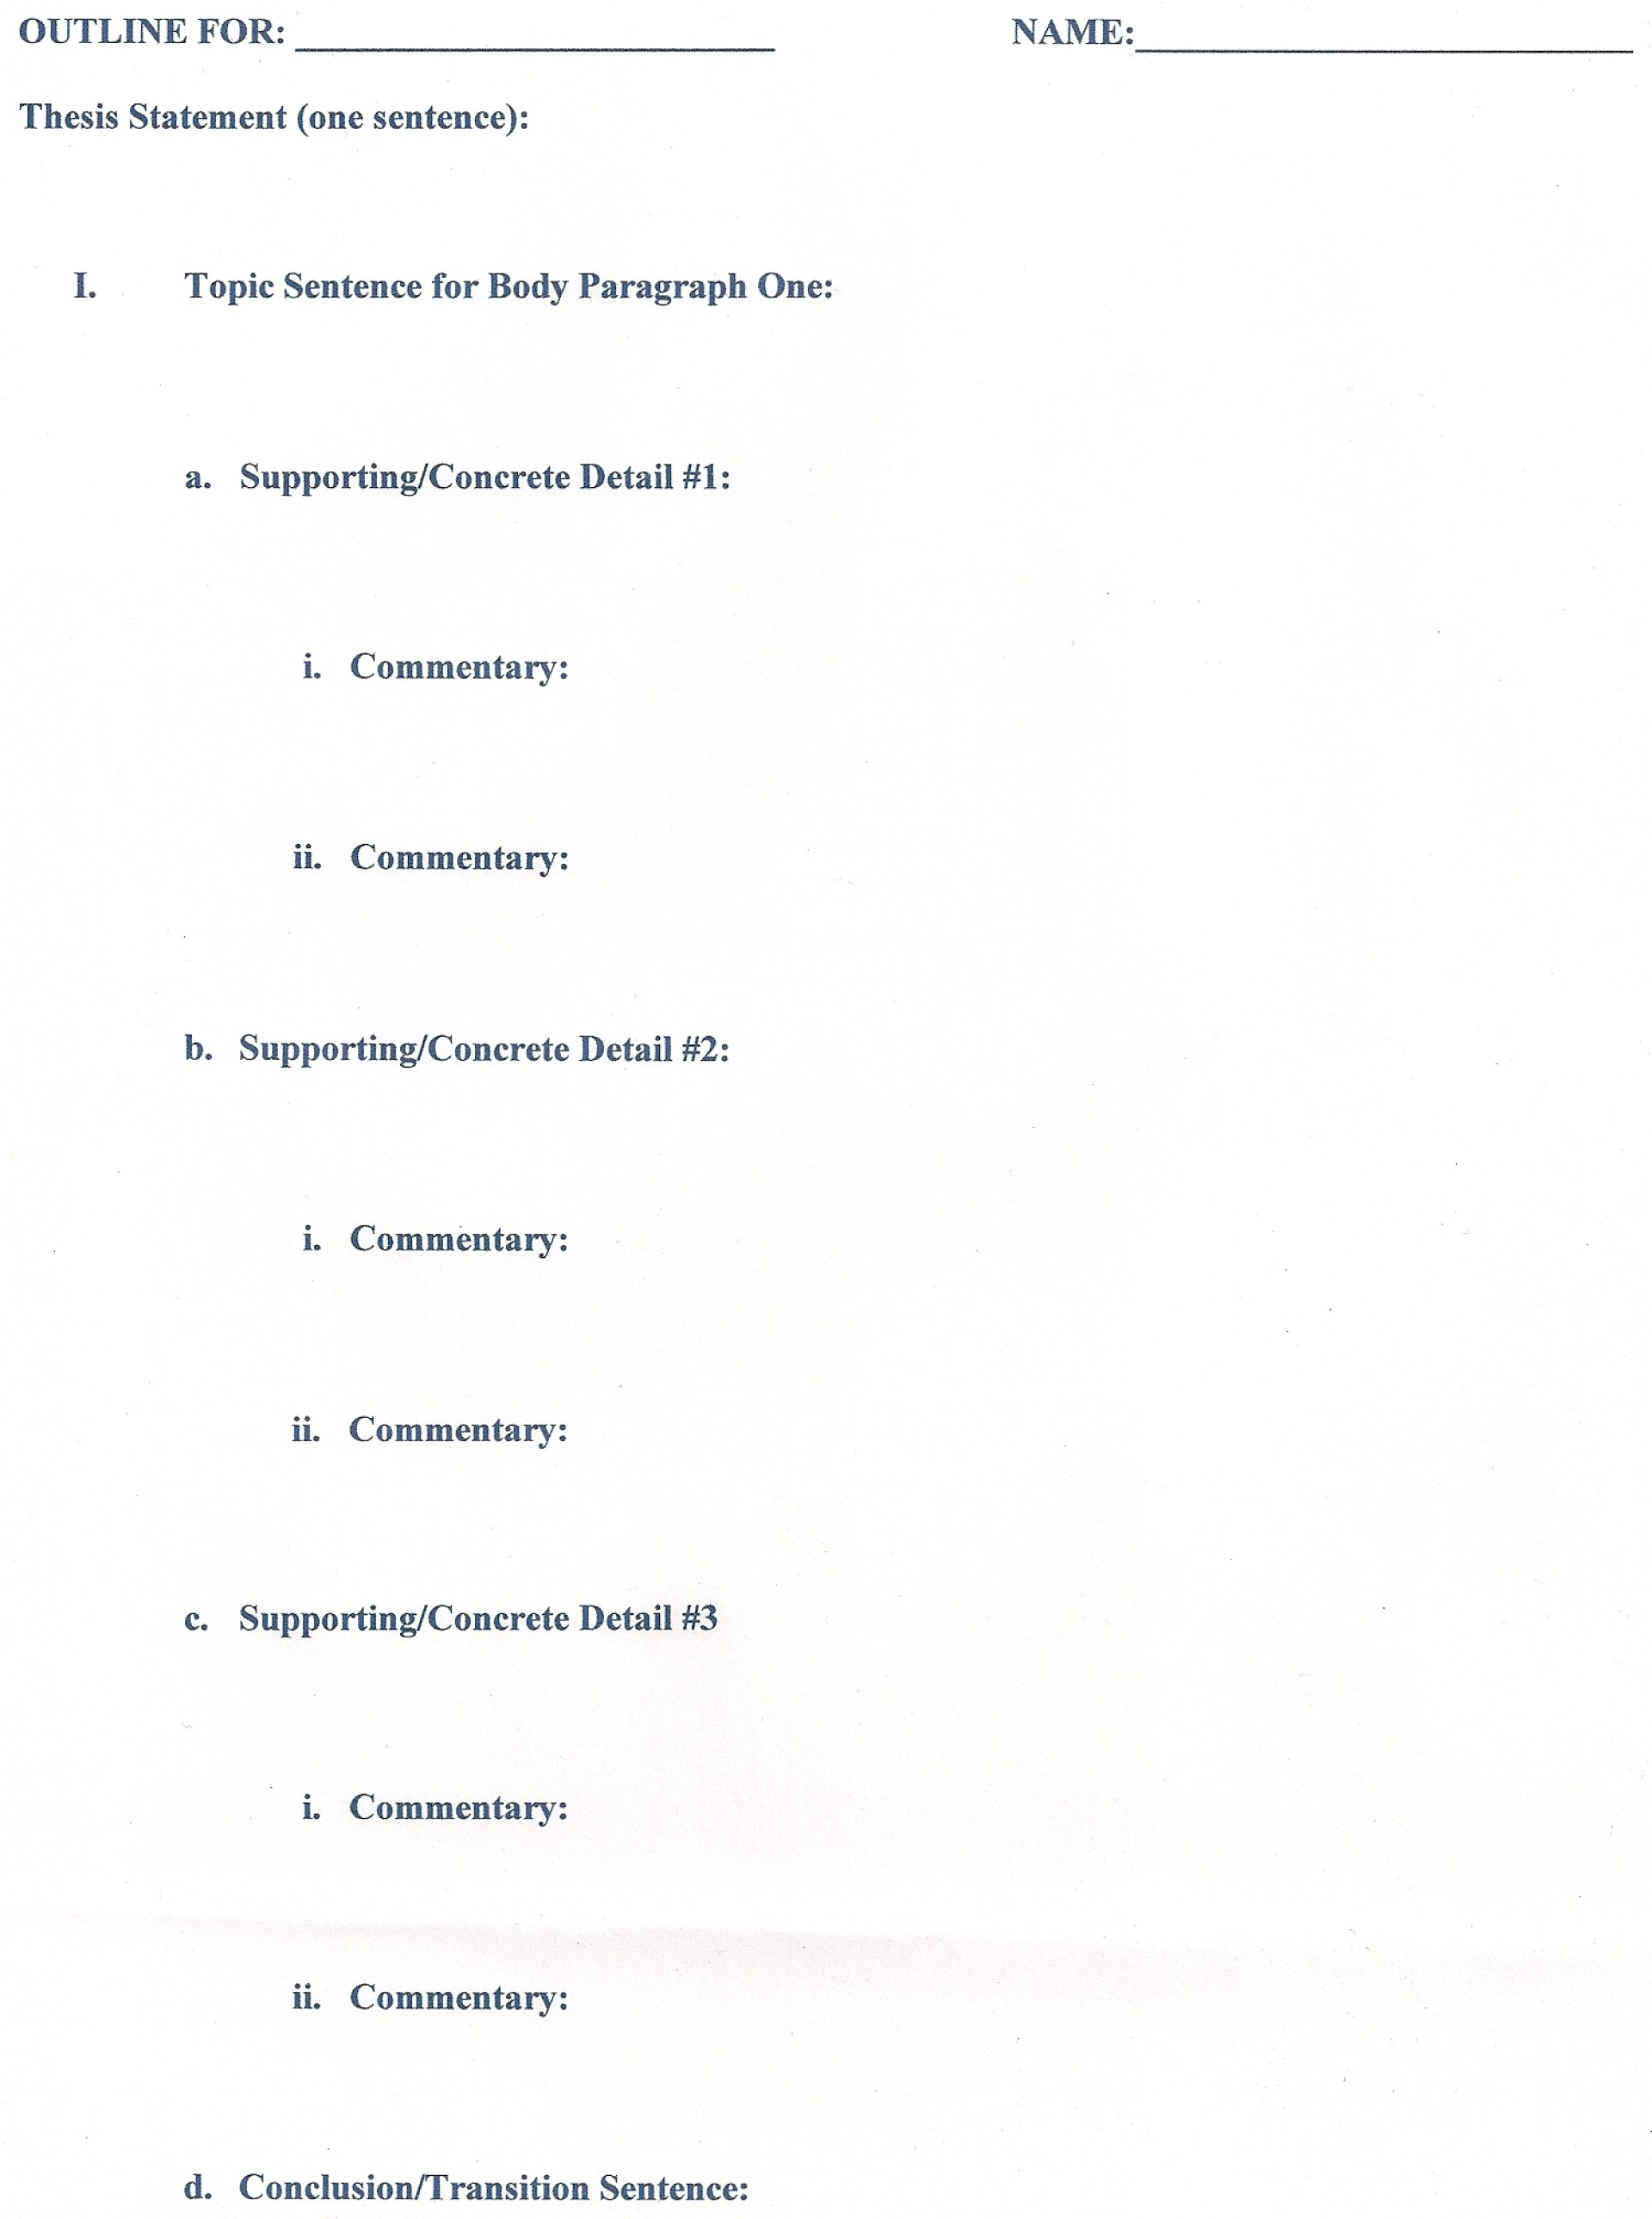 017 Sample Outlines For Researchs Outline Awful Research Papers Free Example Writing 1920